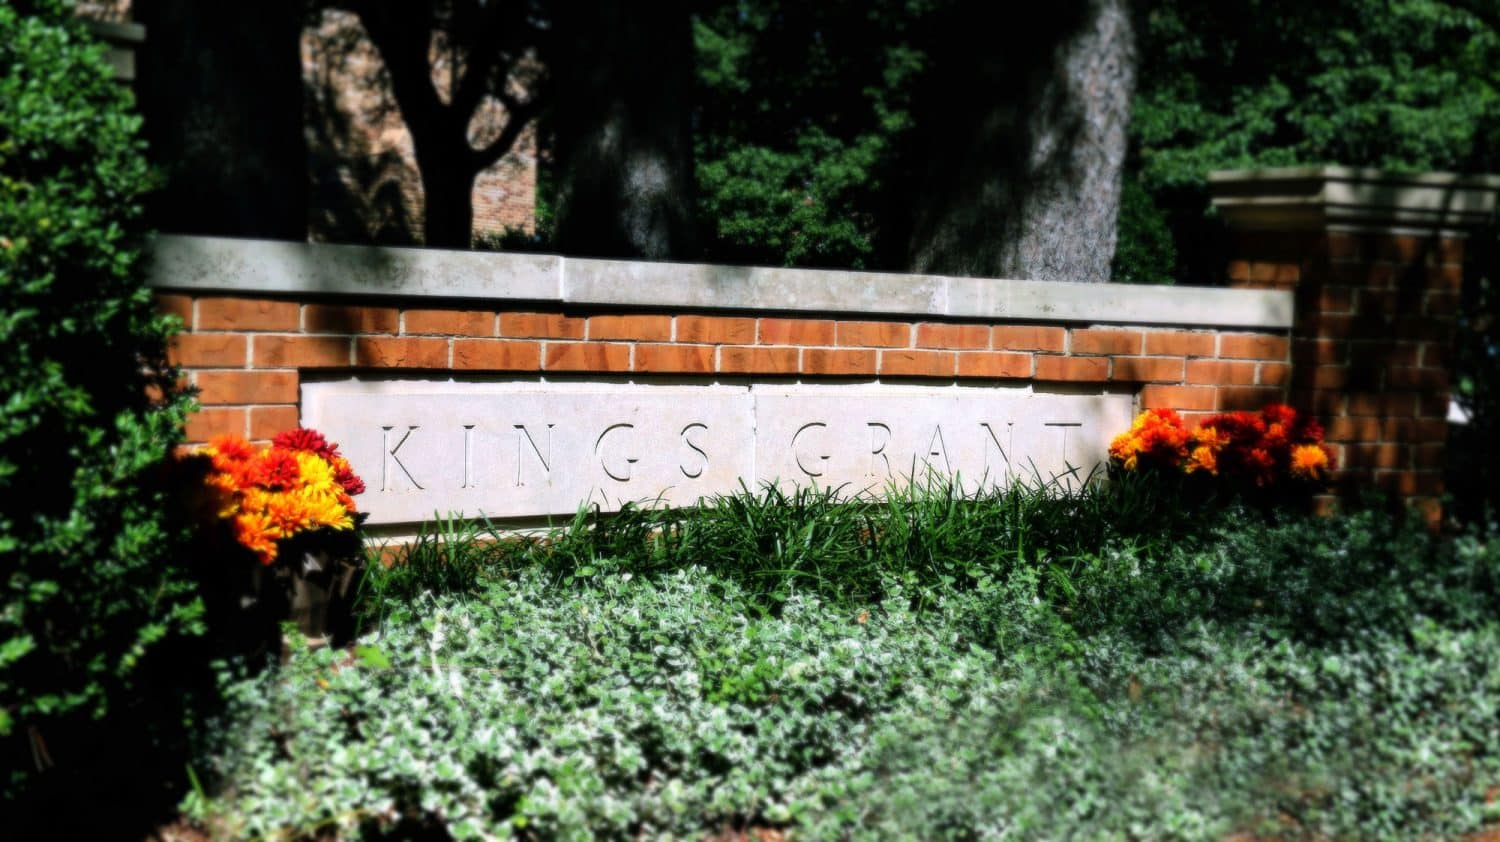 Kings Grant neighborhood sign placed at the entry of Lakewood Hills #2